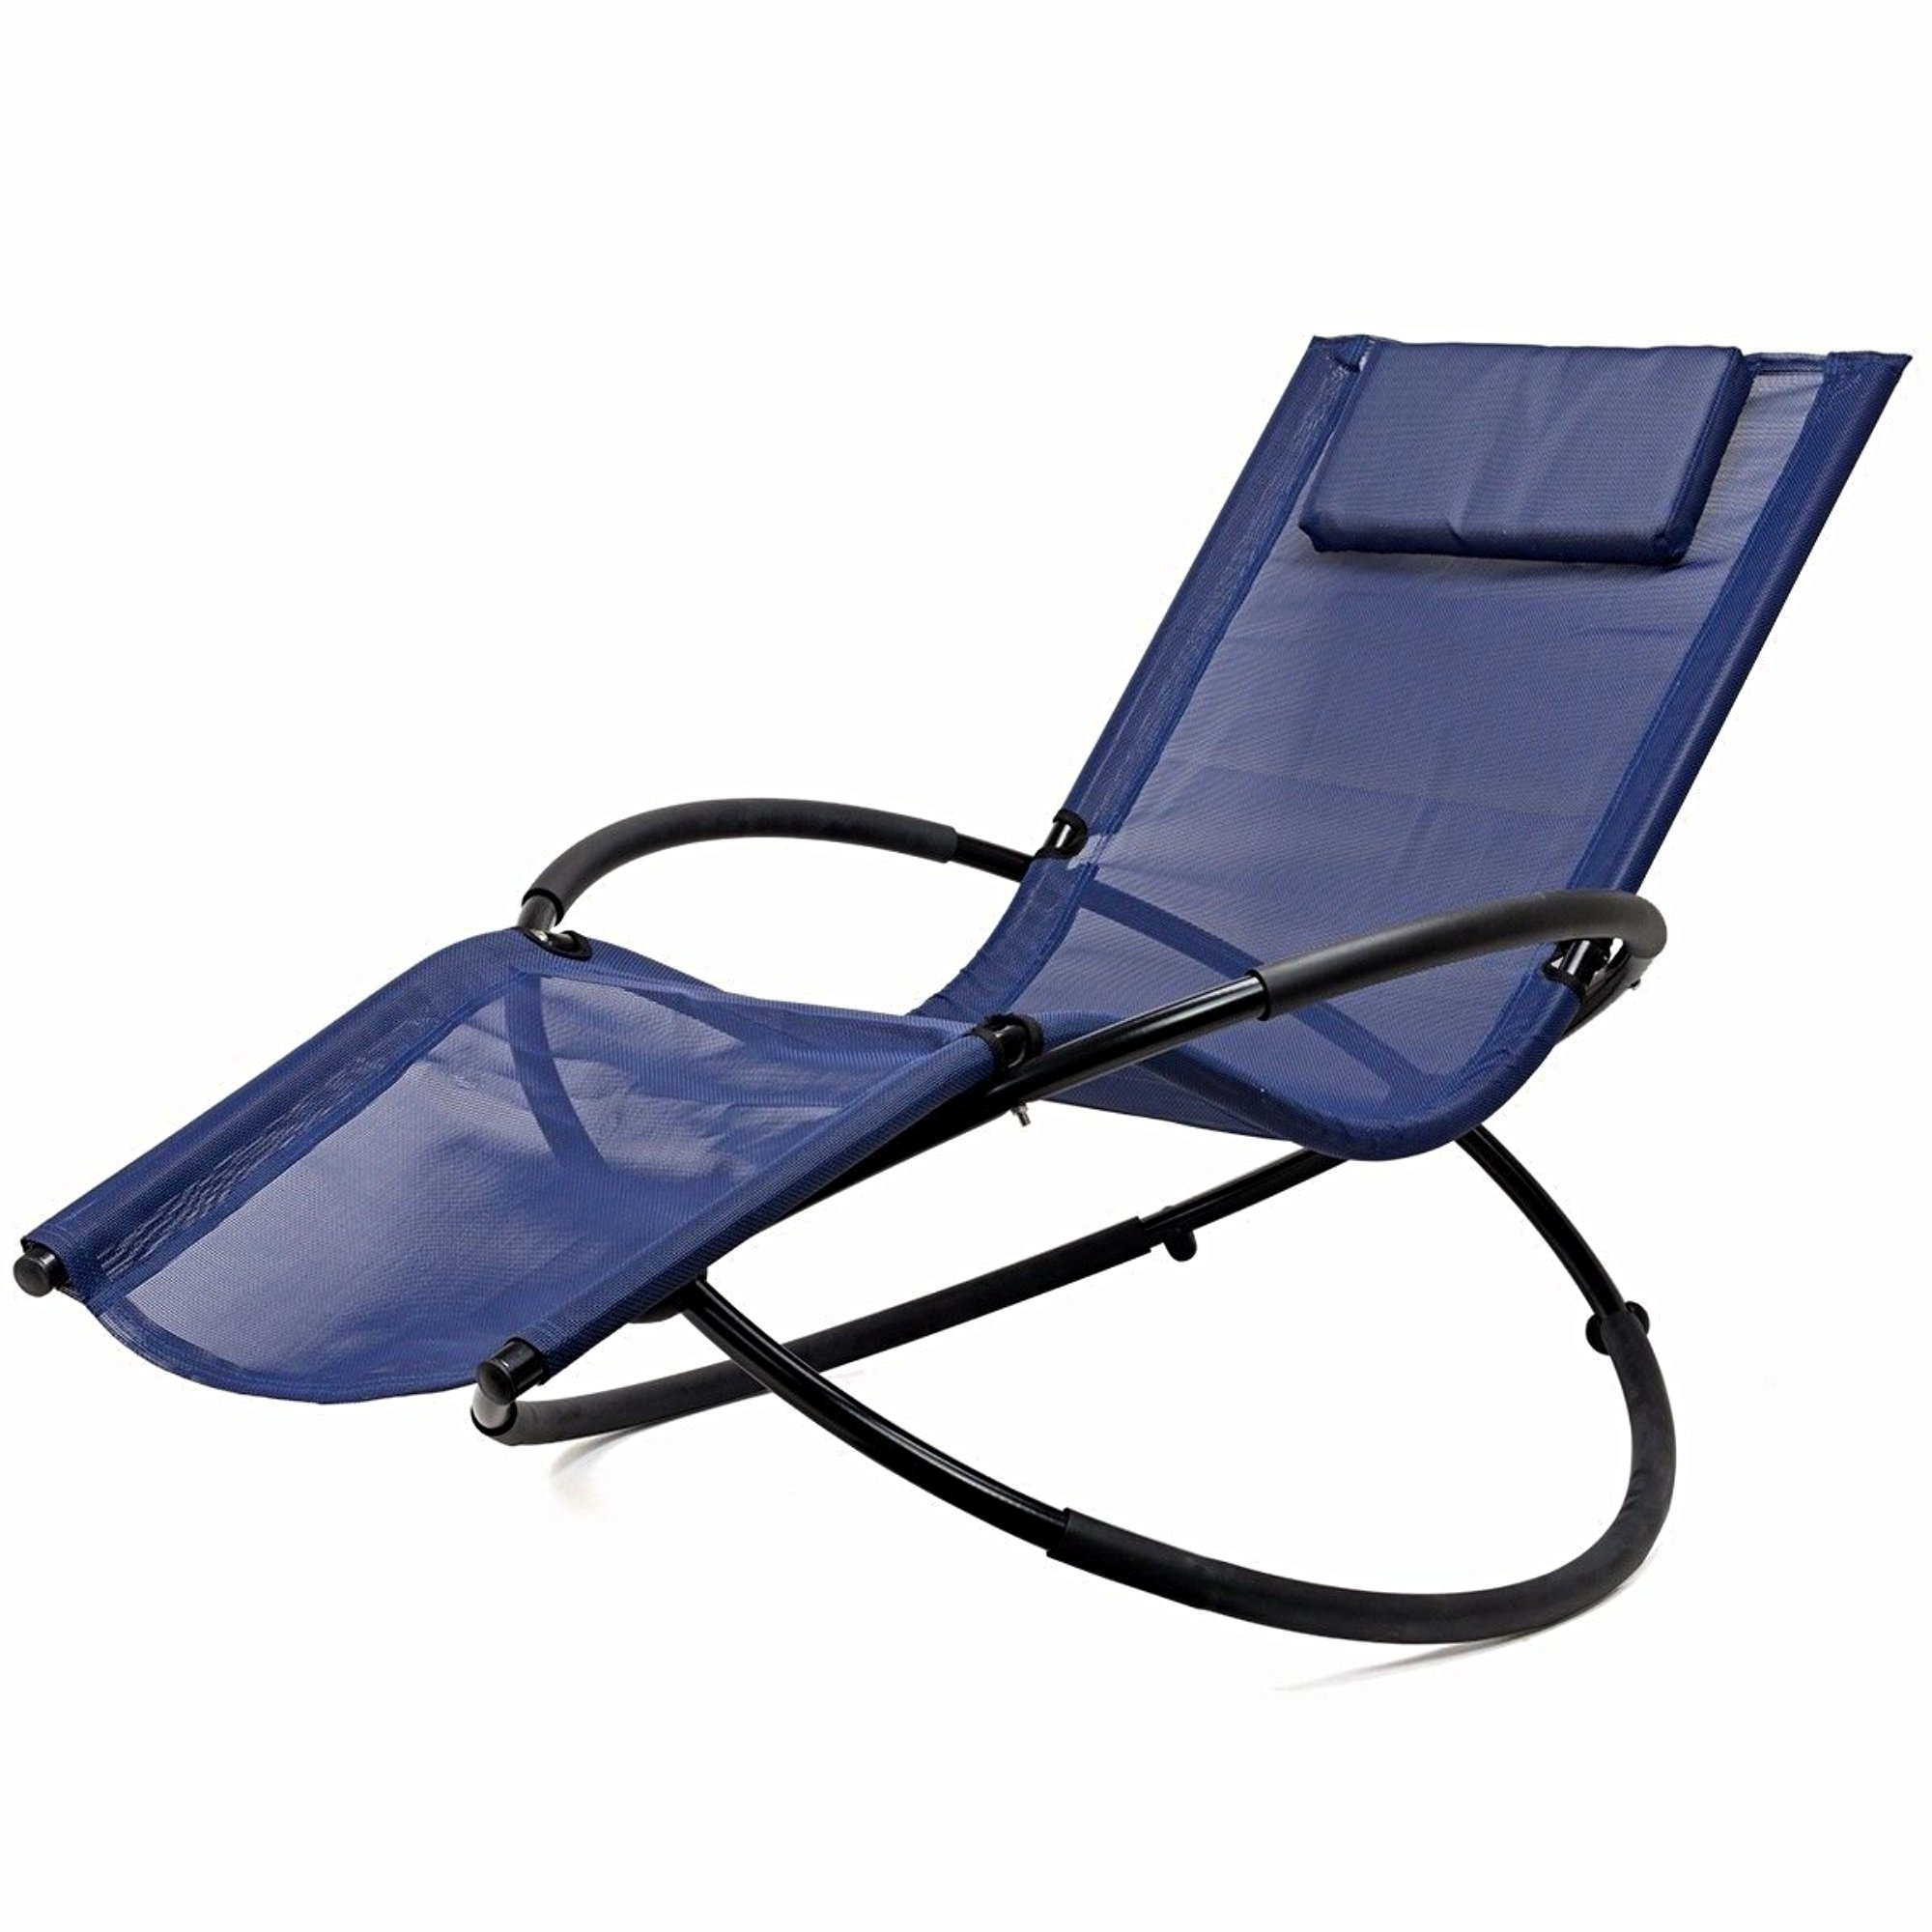 Zero Gravity Folding Orbit Chair Patio Lounger Reclining Rocking Relax Outdoor Navy Blue #235 by koonlertshop